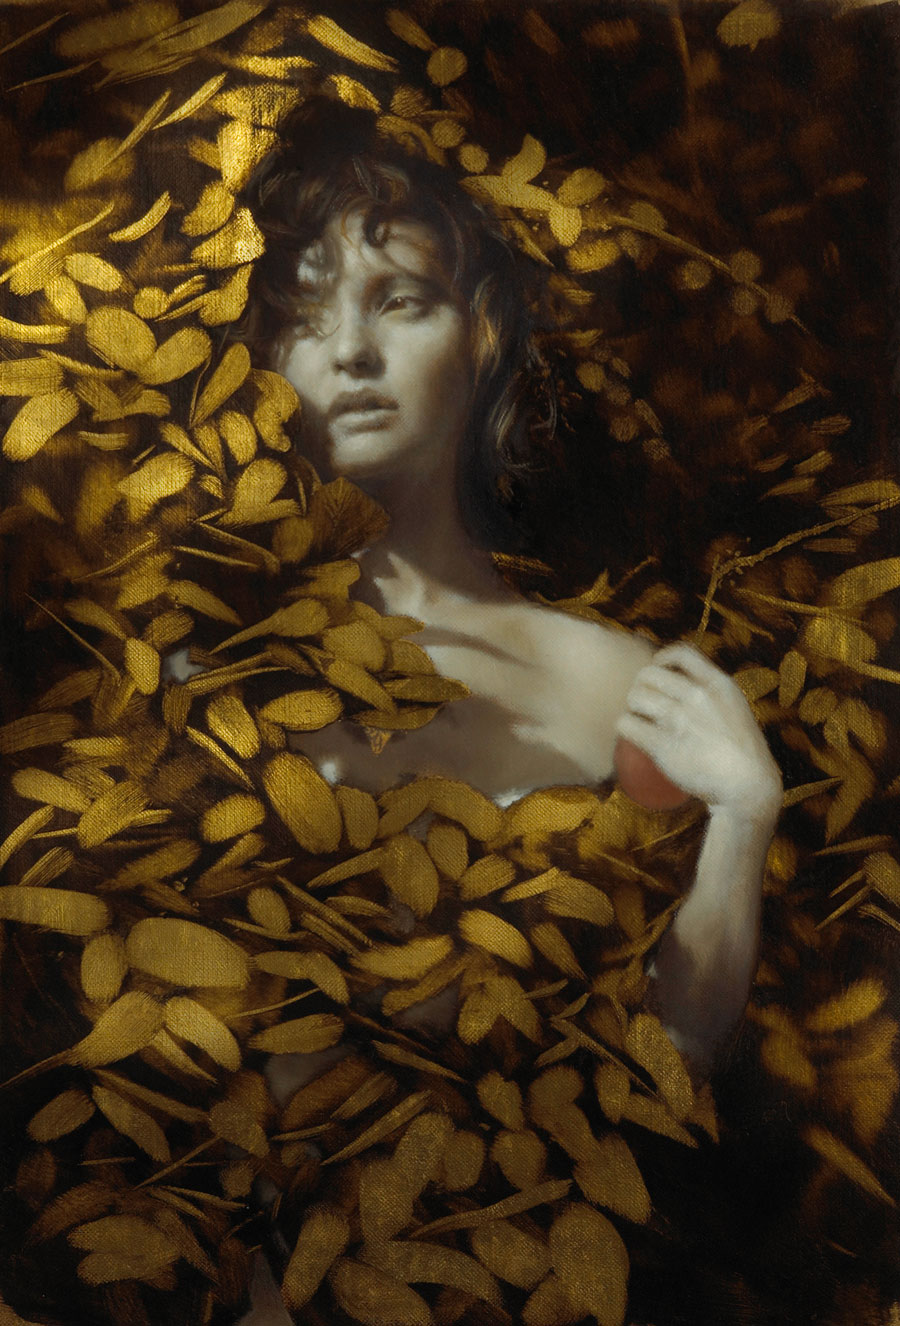 Revelen , 2009. Oil and gold on linen. 12 x 8inches. Private collection.